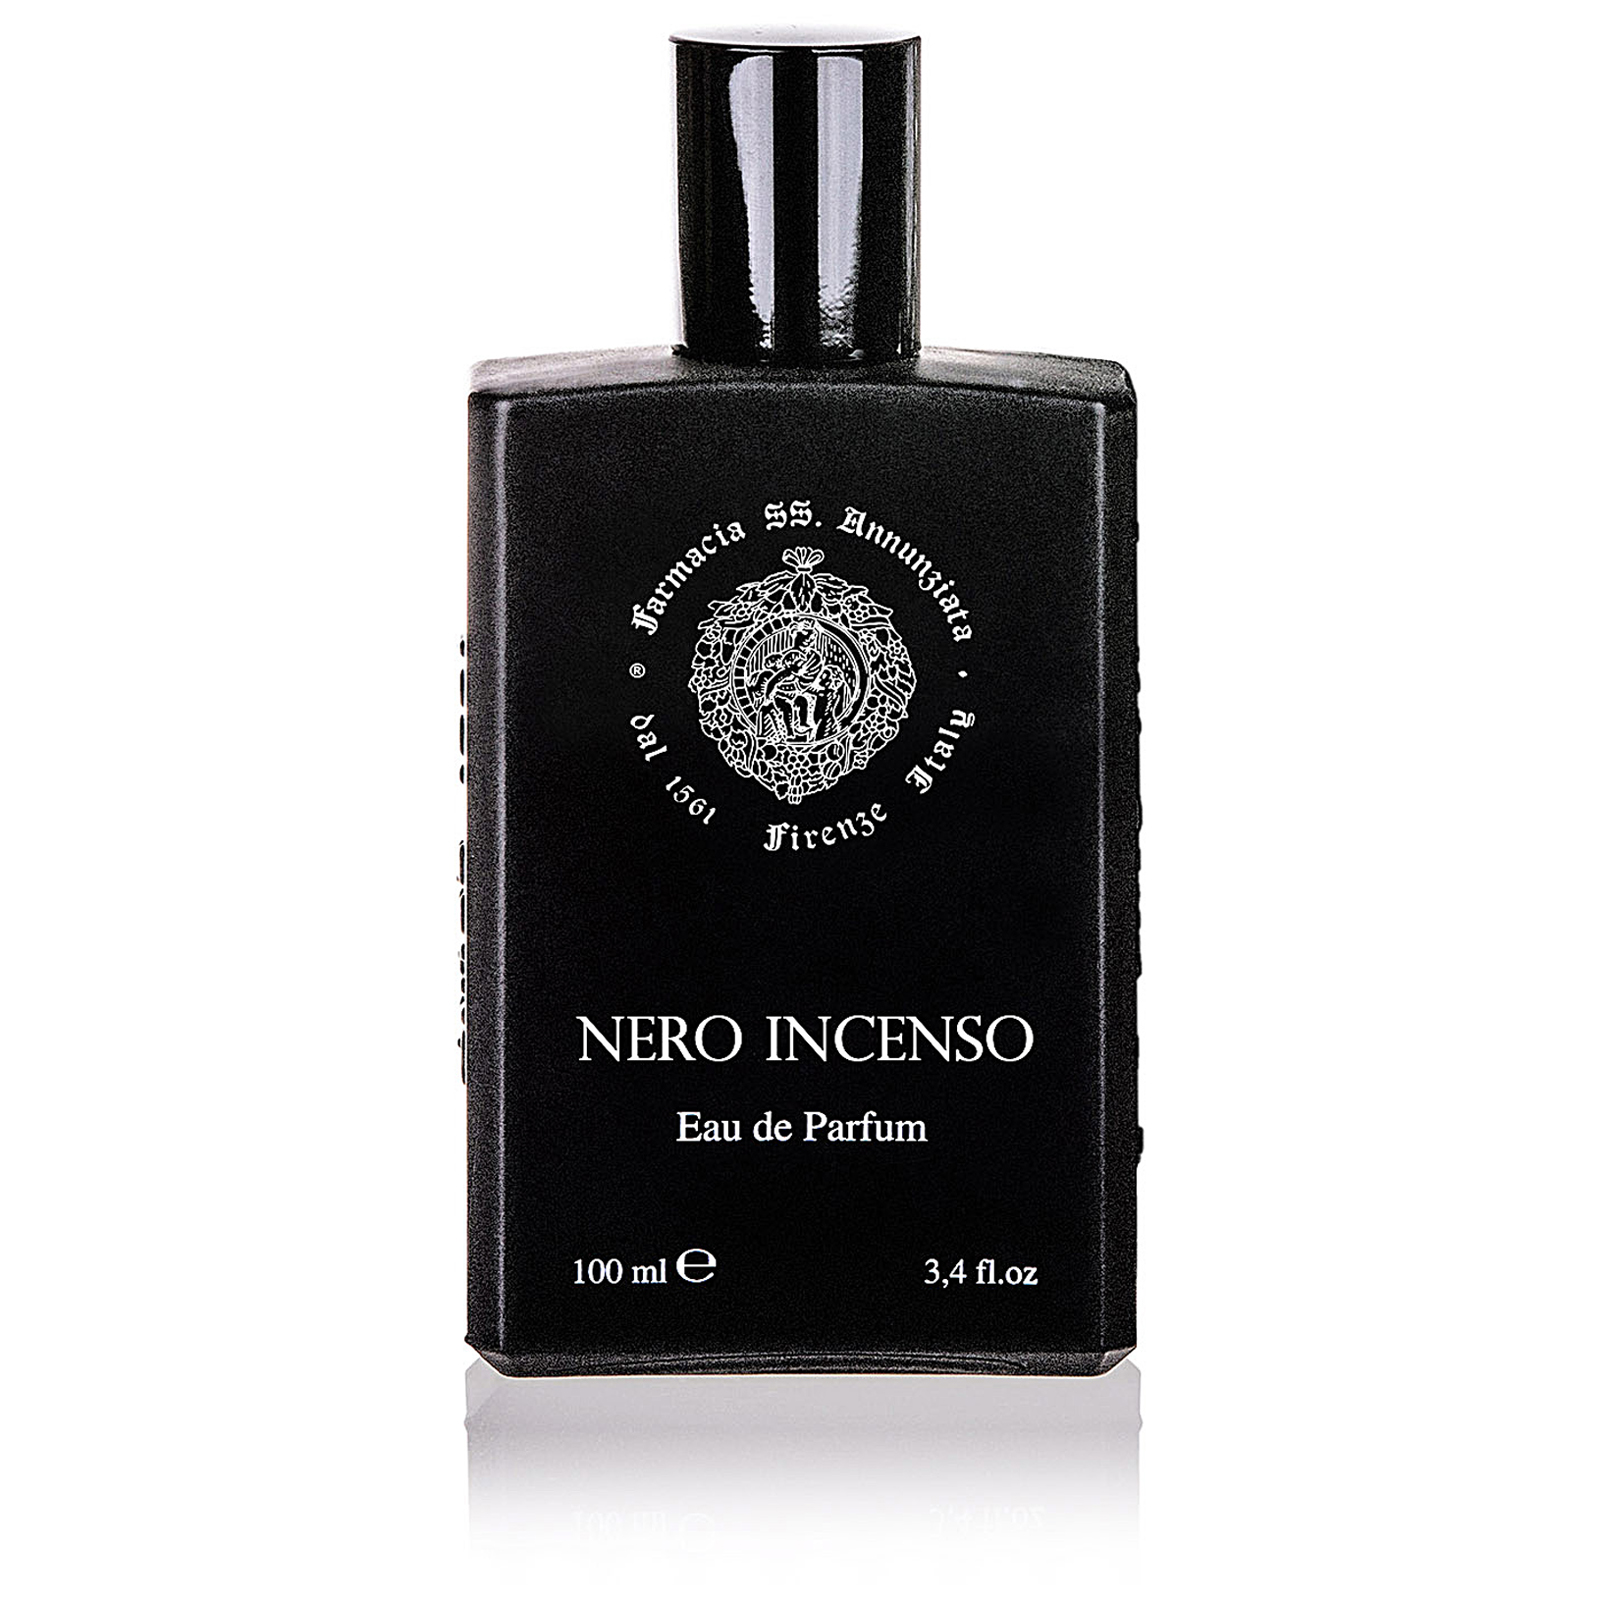 Nero incenso profumo eau de parfum 100 ml